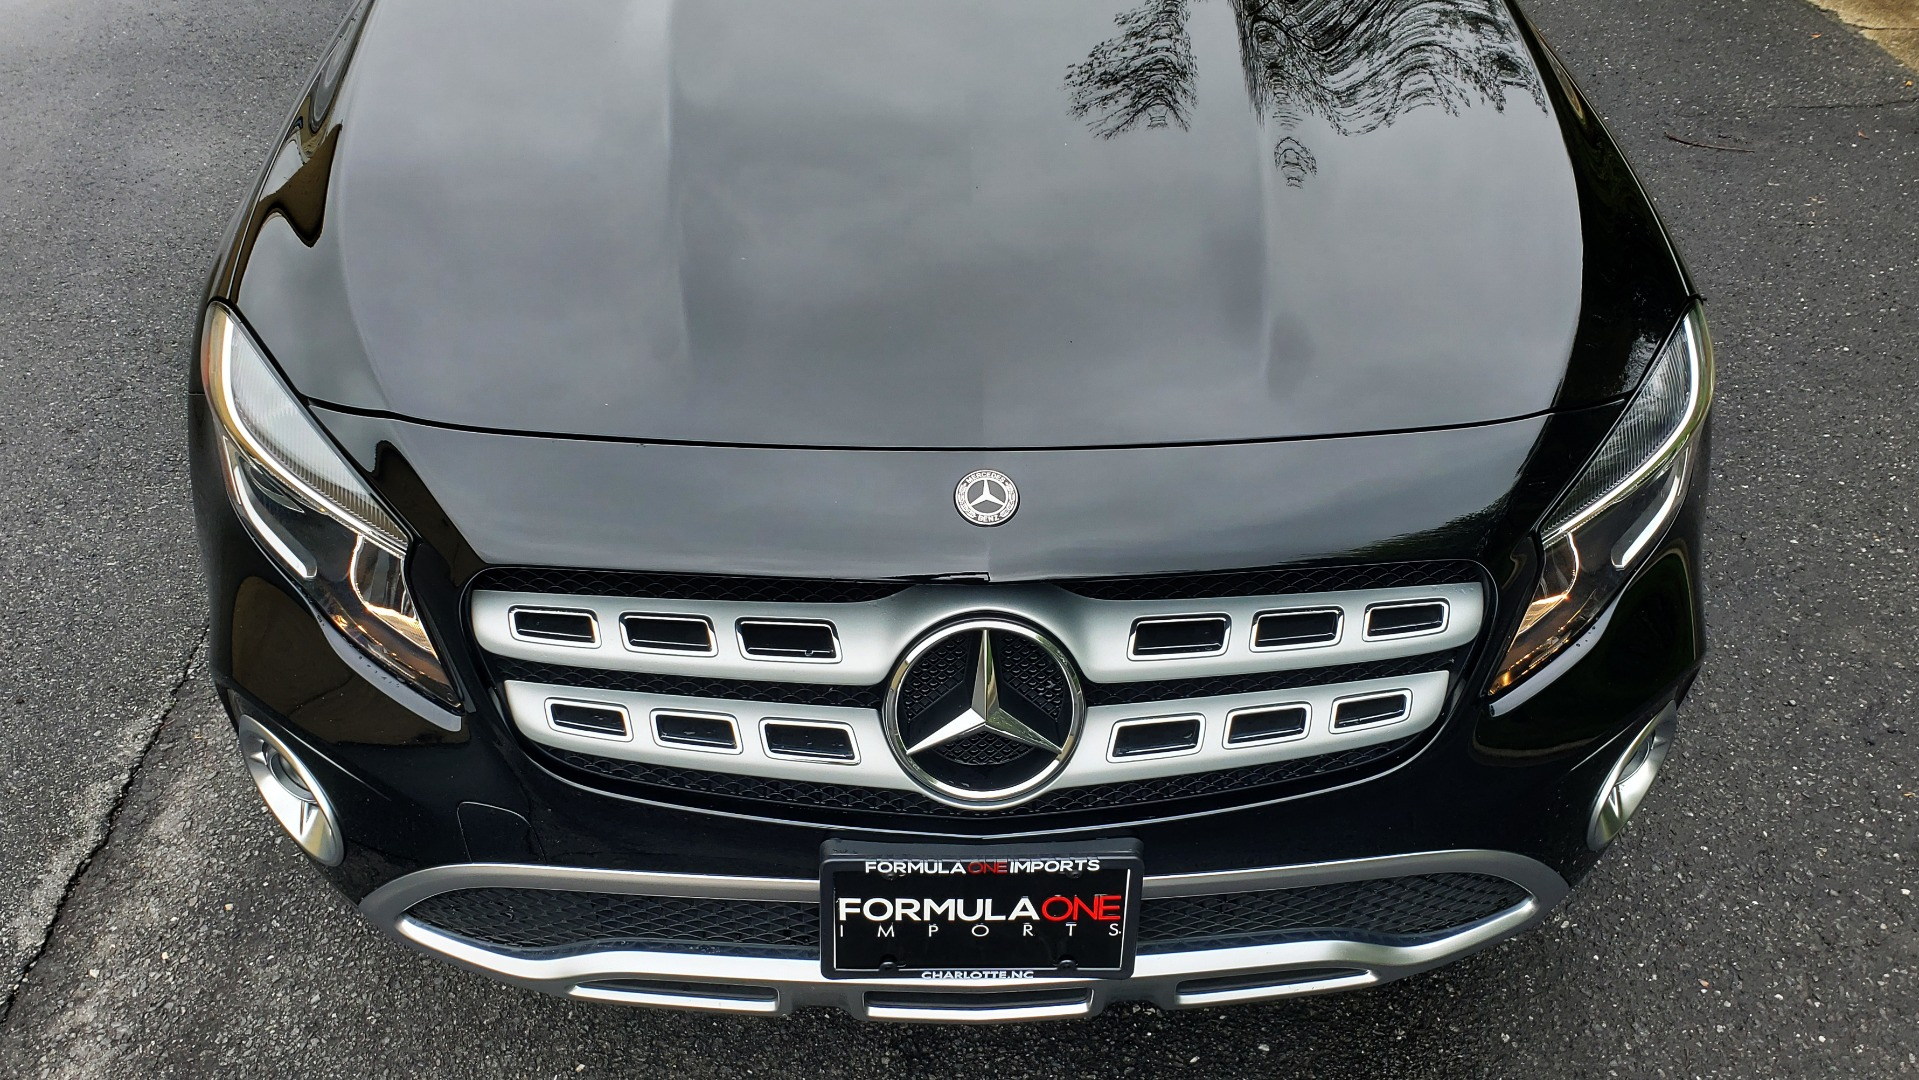 Used 2018 Mercedes-Benz GLA 250 4MATIC / PREMIUM / CONV PKG / NAV / PANO-ROOF for sale Sold at Formula Imports in Charlotte NC 28227 13